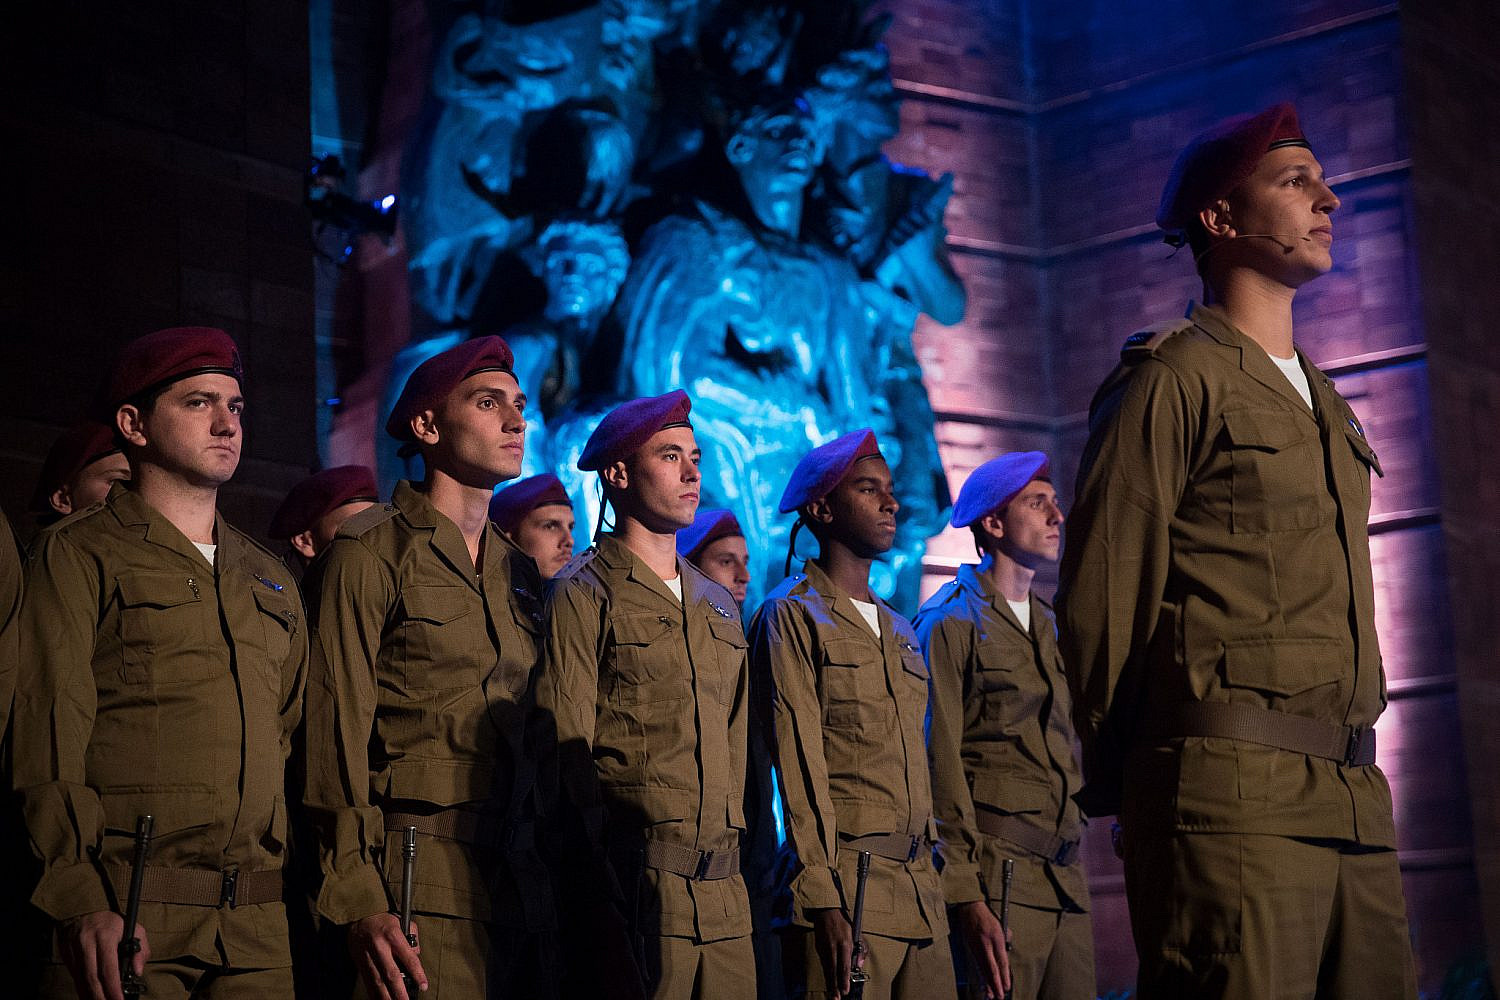 Israeli soldiers stand below a monument at a ceremony held at the Yad Vashem Holocaust Memorial Museum in Jerusalem, as Israel marks annual Holocaust Remembrance Day. April 11, 2018. (Yonatan Sindel/Flash90)